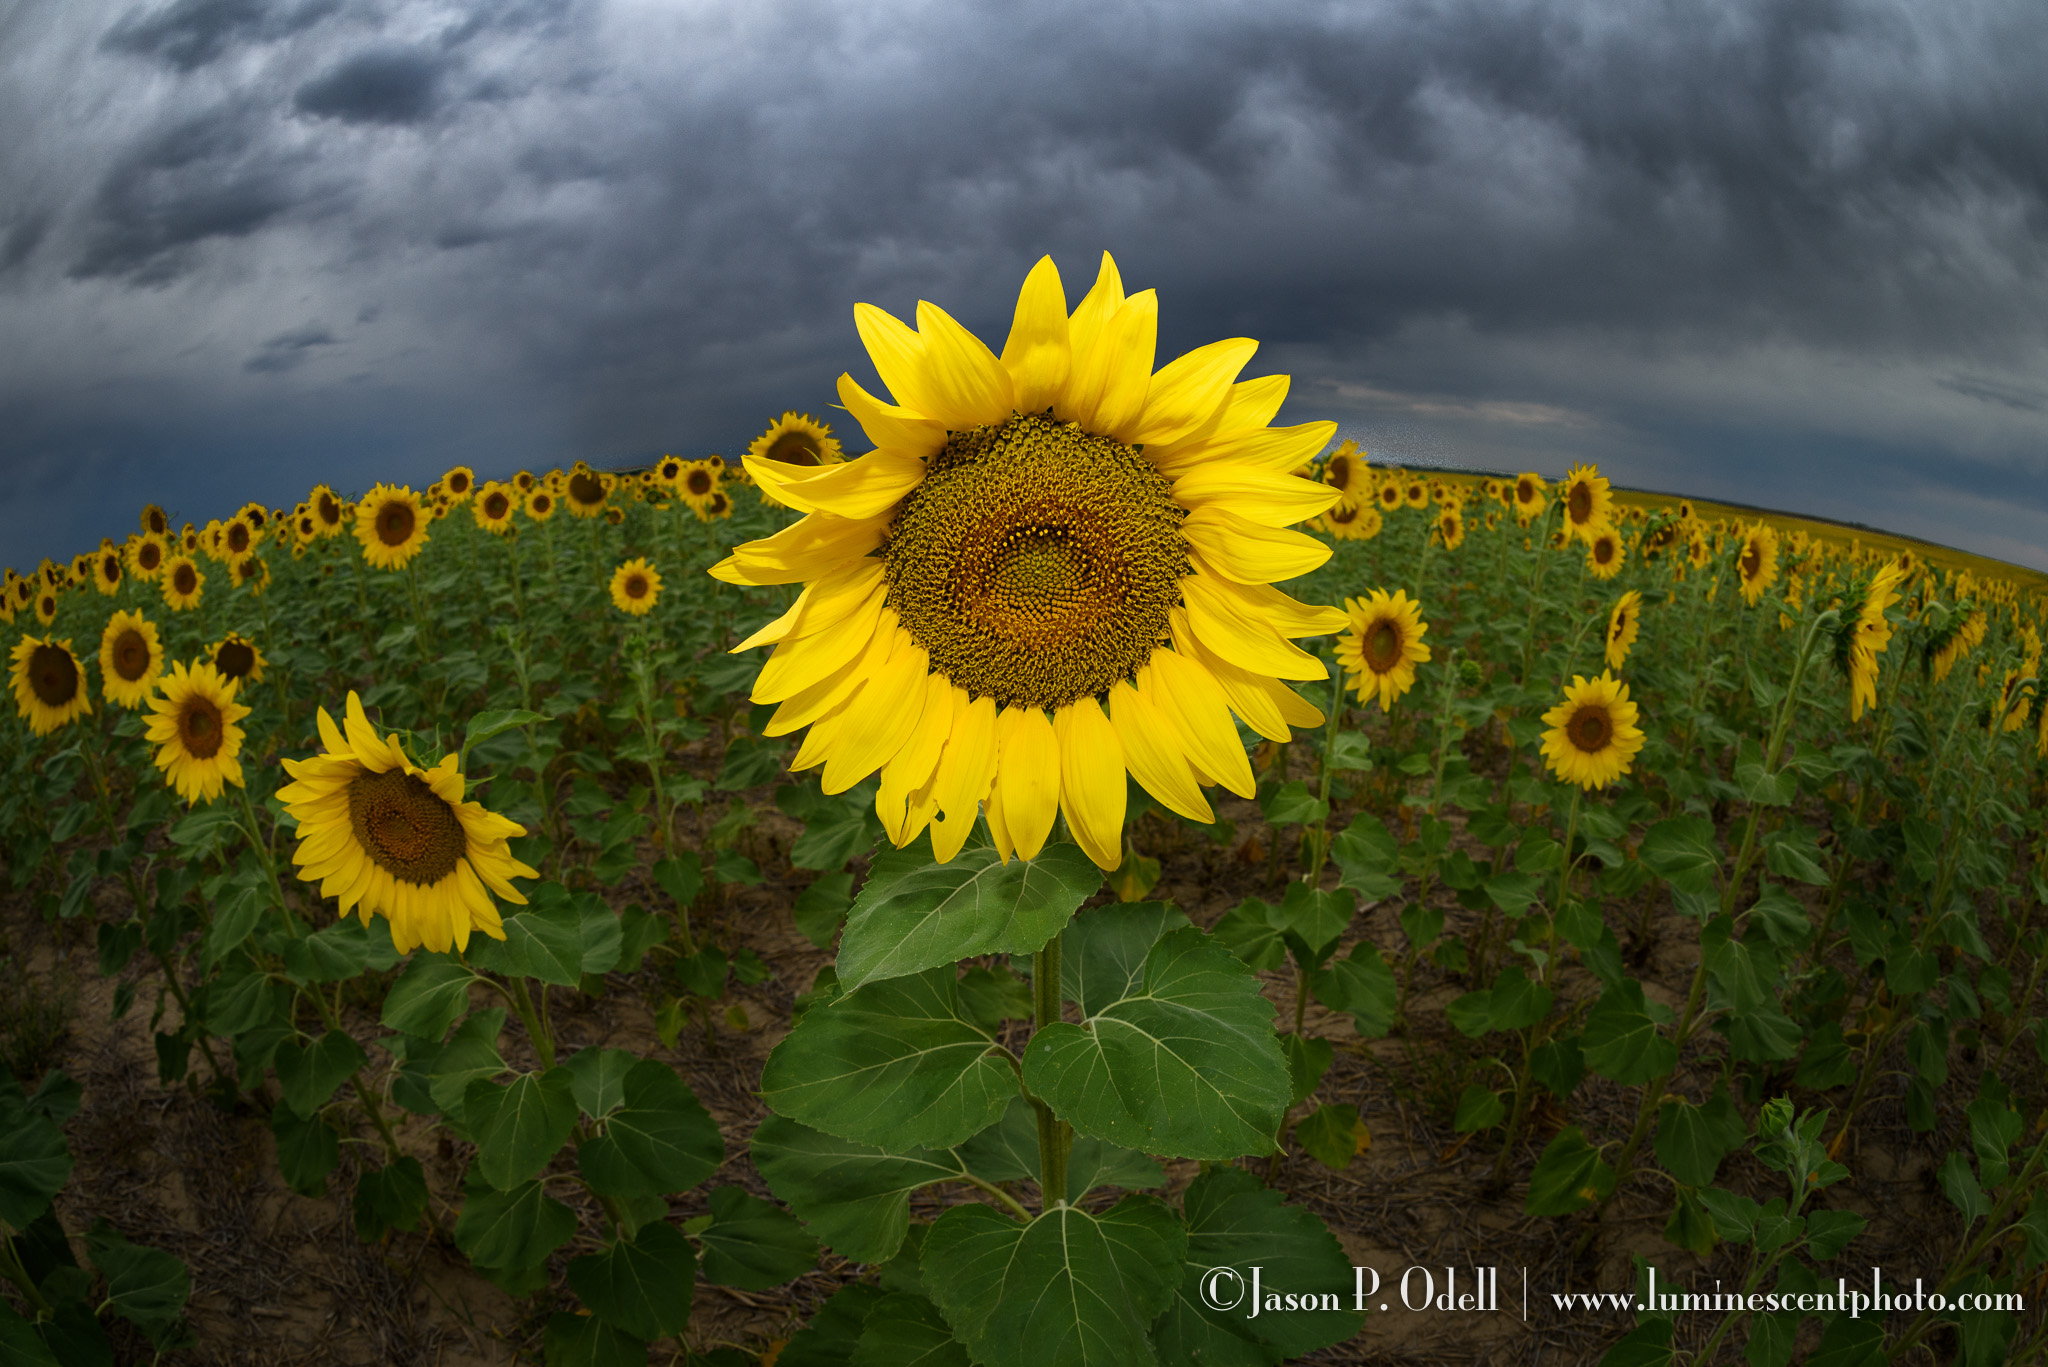 Sunflowers near Denver, Colorado